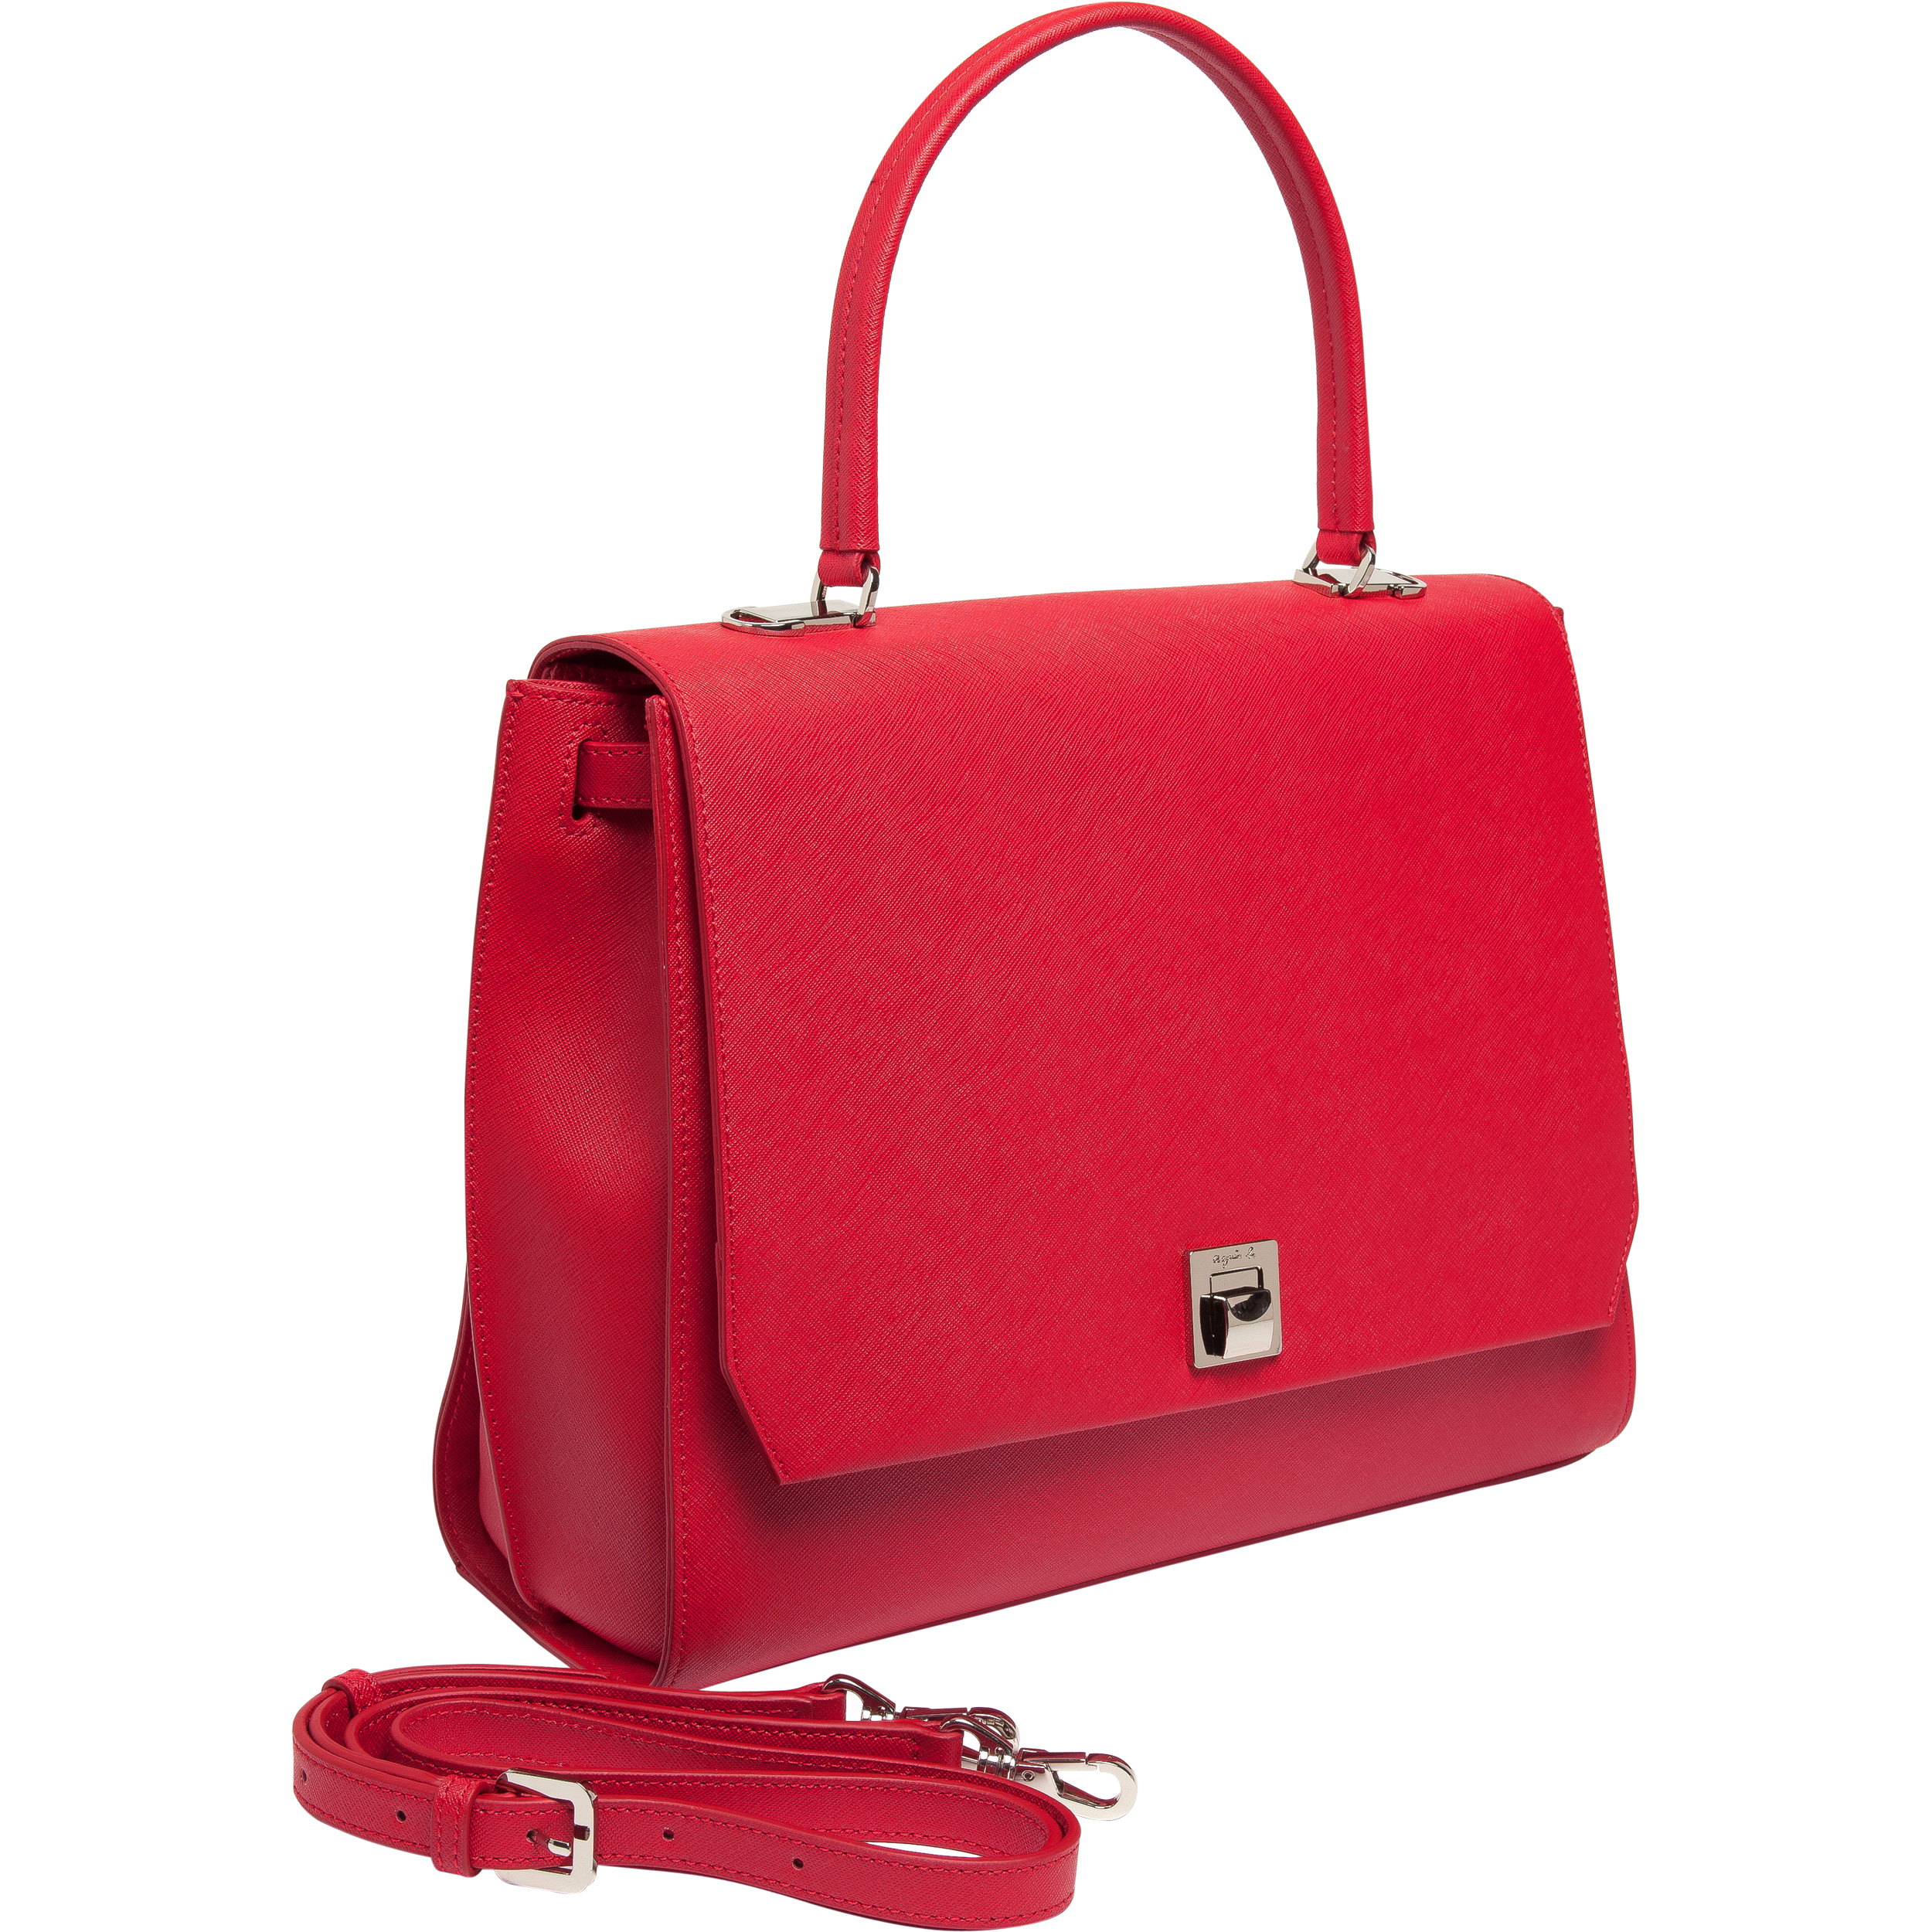 Agnès b. Small Red Hand Bag in Red | Lyst